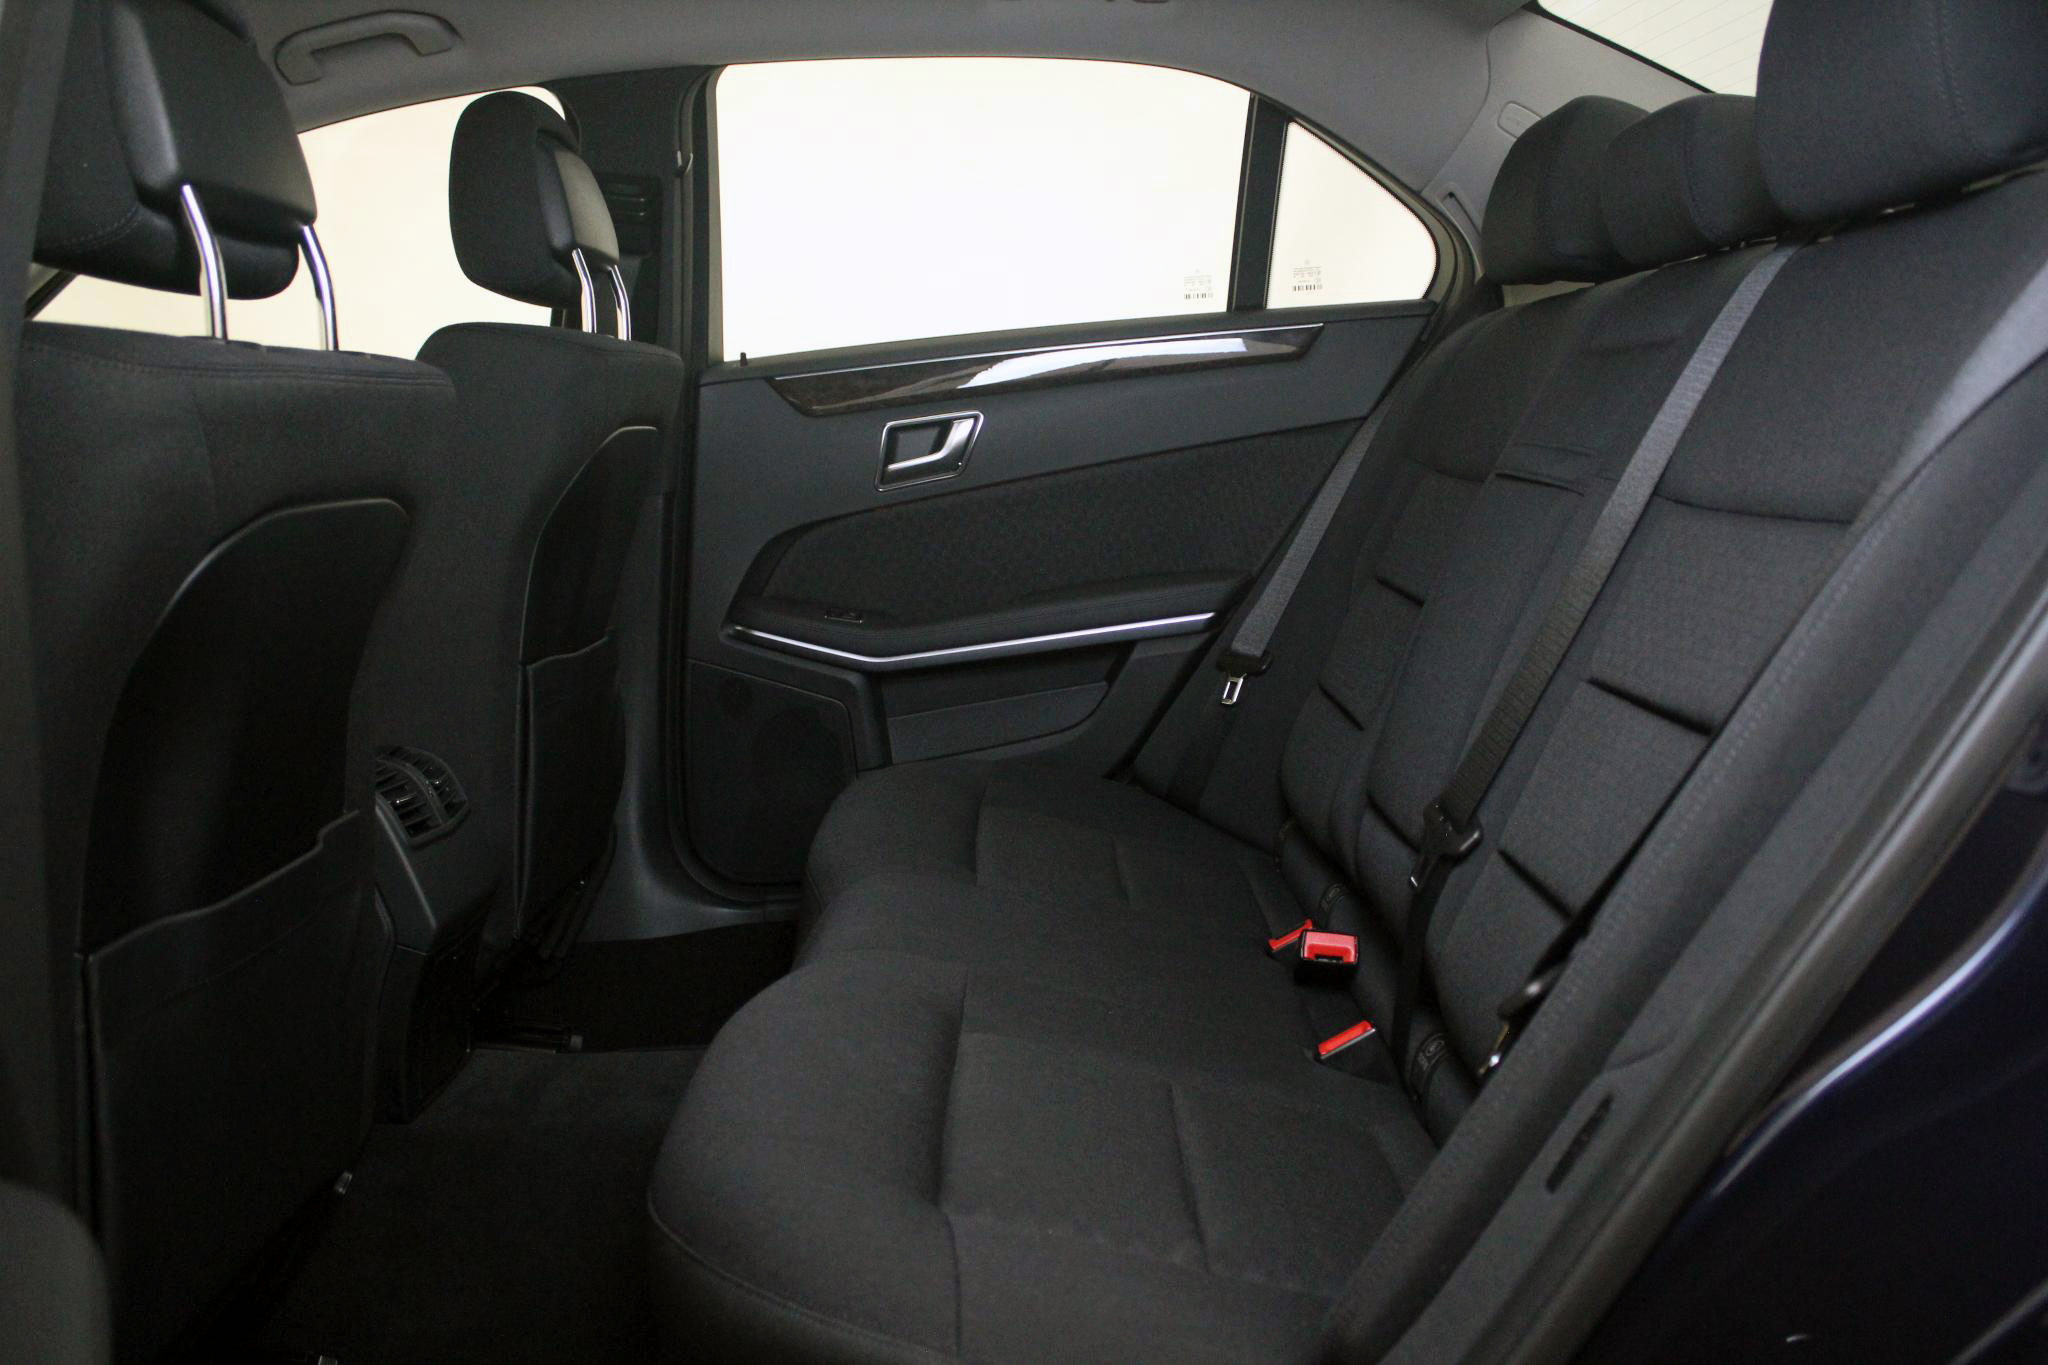 Mercedes-Benz Clase E CLASE E 250 CDI BLUE EFFICIENCY AUTO imagen 17